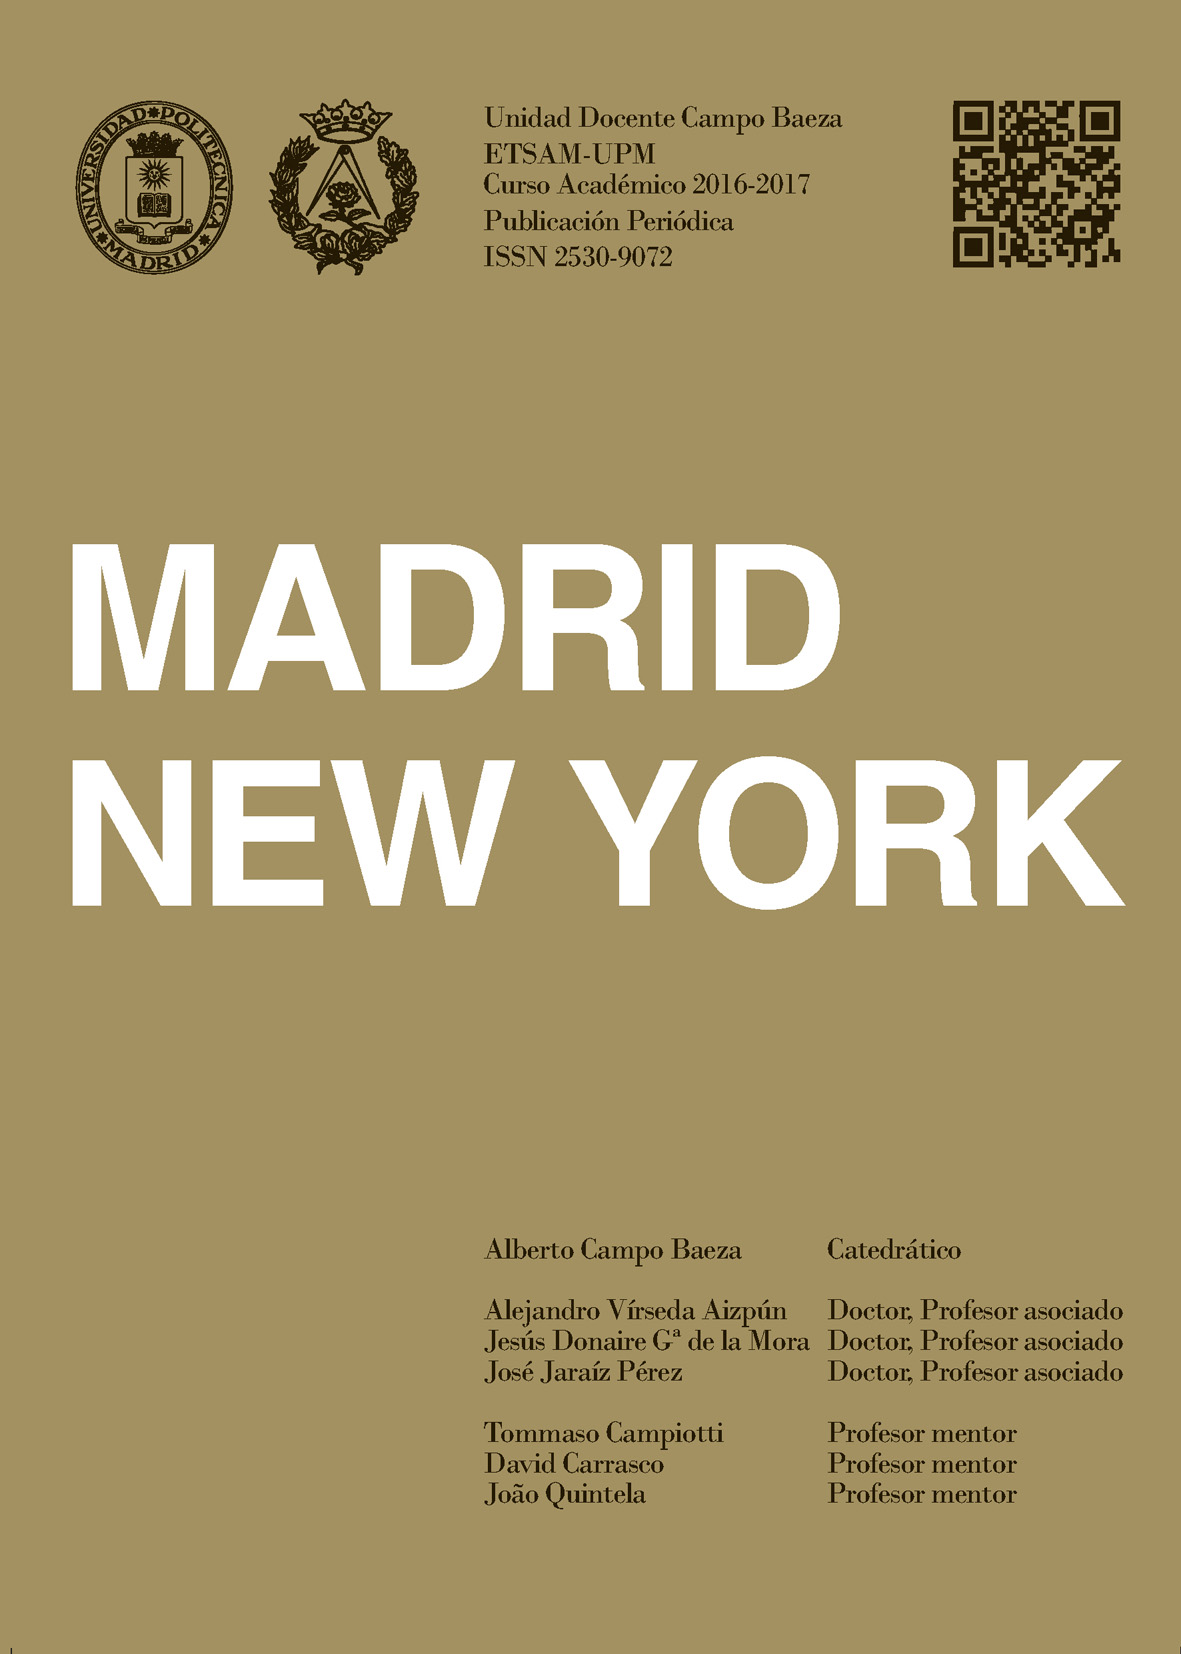 2016-17 UDCB Madrid - New York - Miguel Guitart.jpg